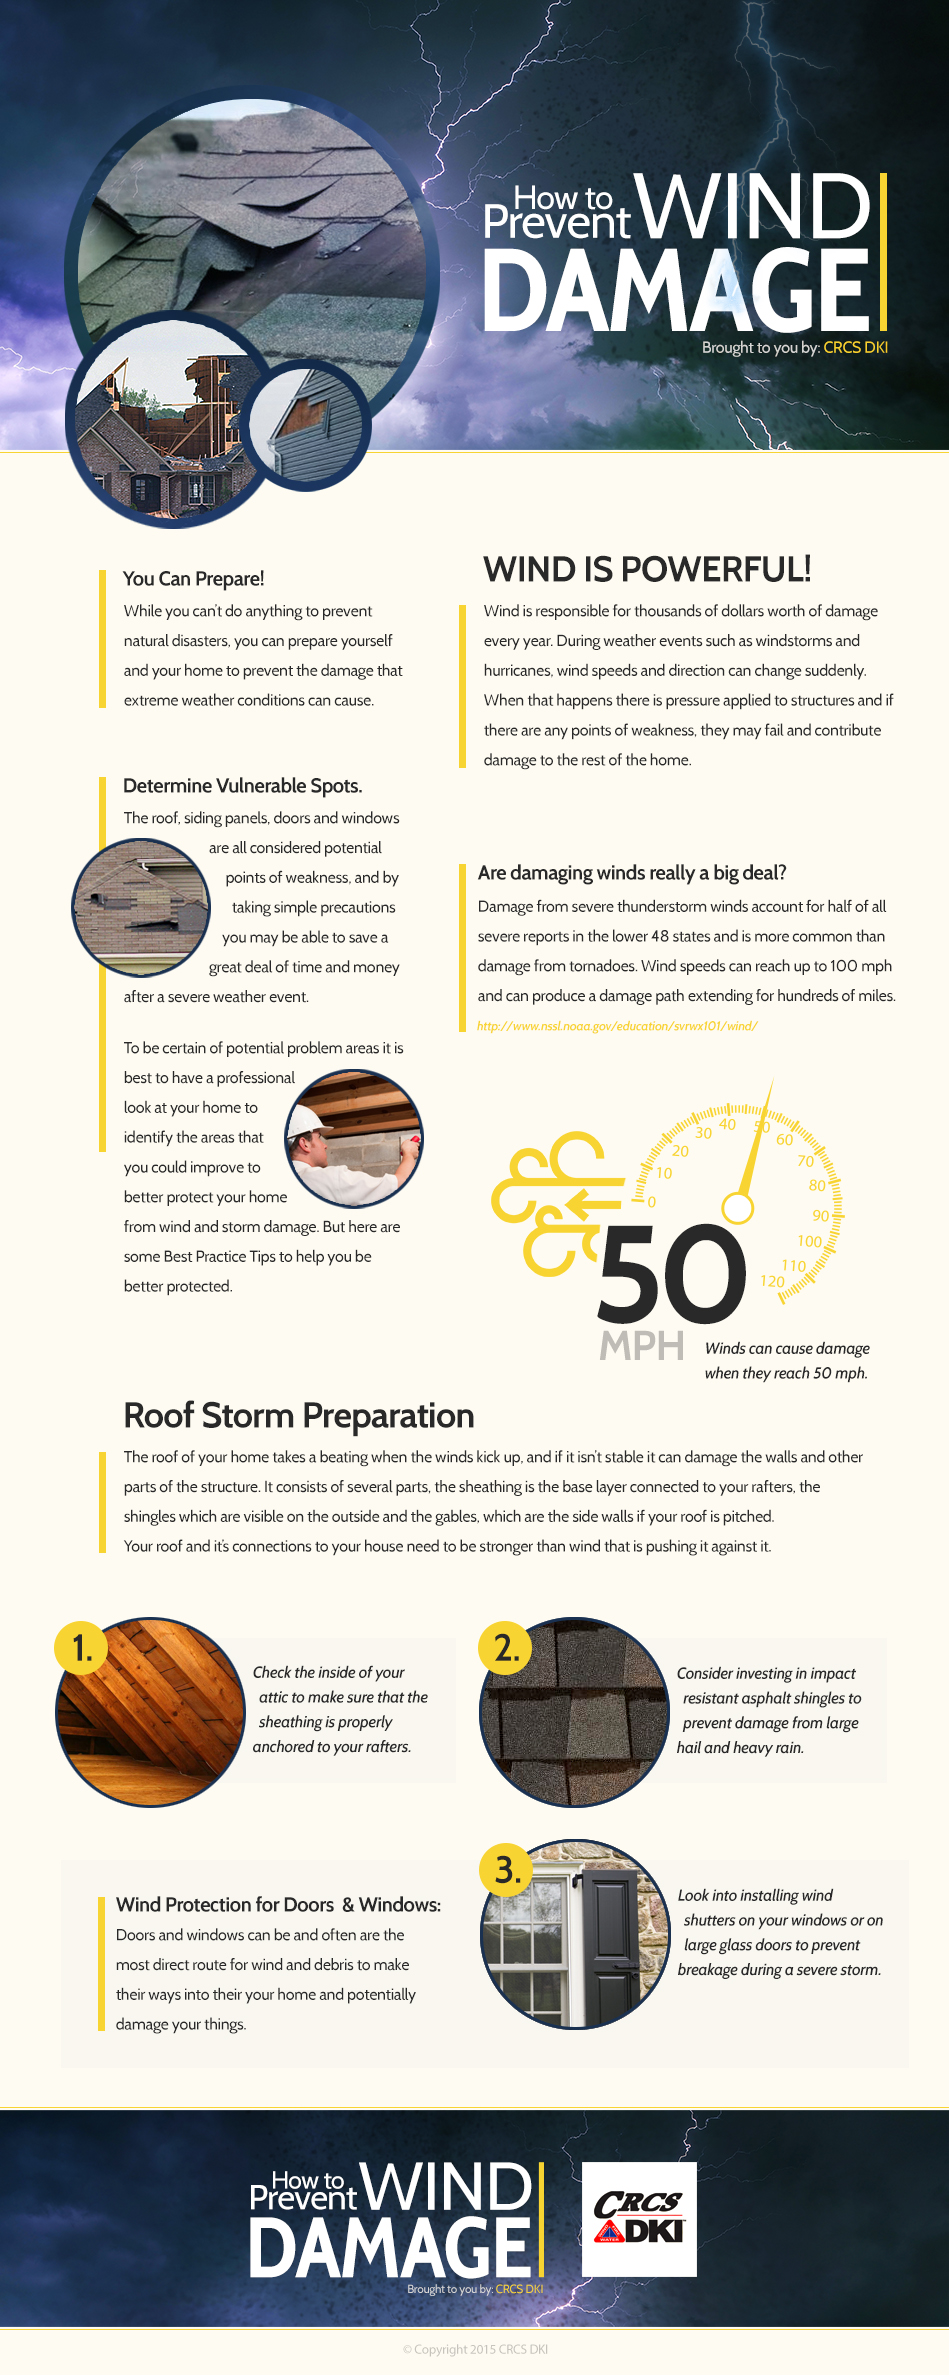 CRCS DKI Infographic – How to Prevent Wind Damage